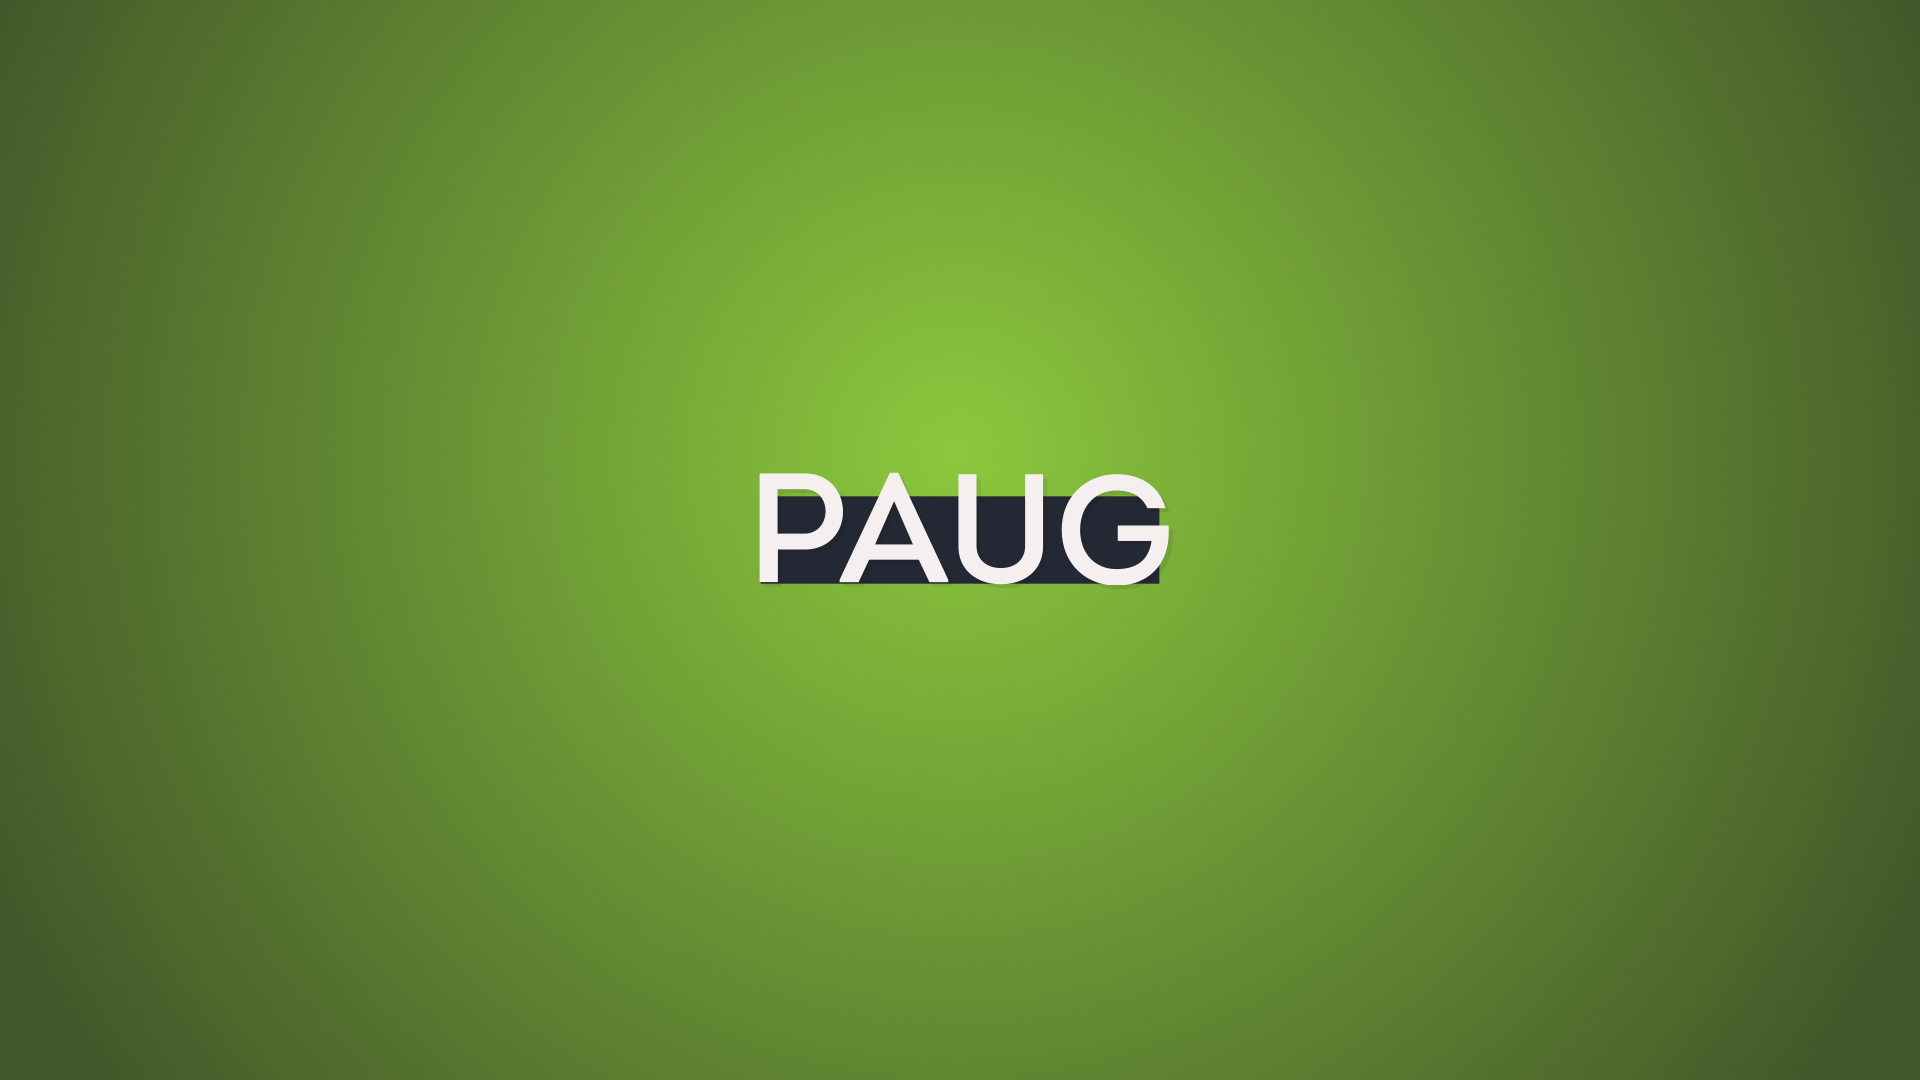 PAUG (Pay As U Go)